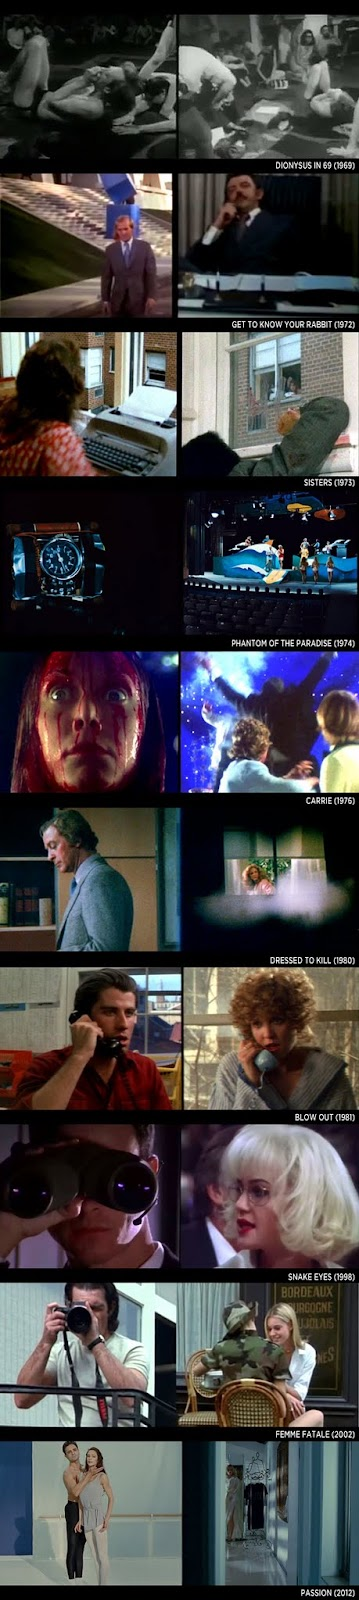 Brian De Palma - Split Screen Shots